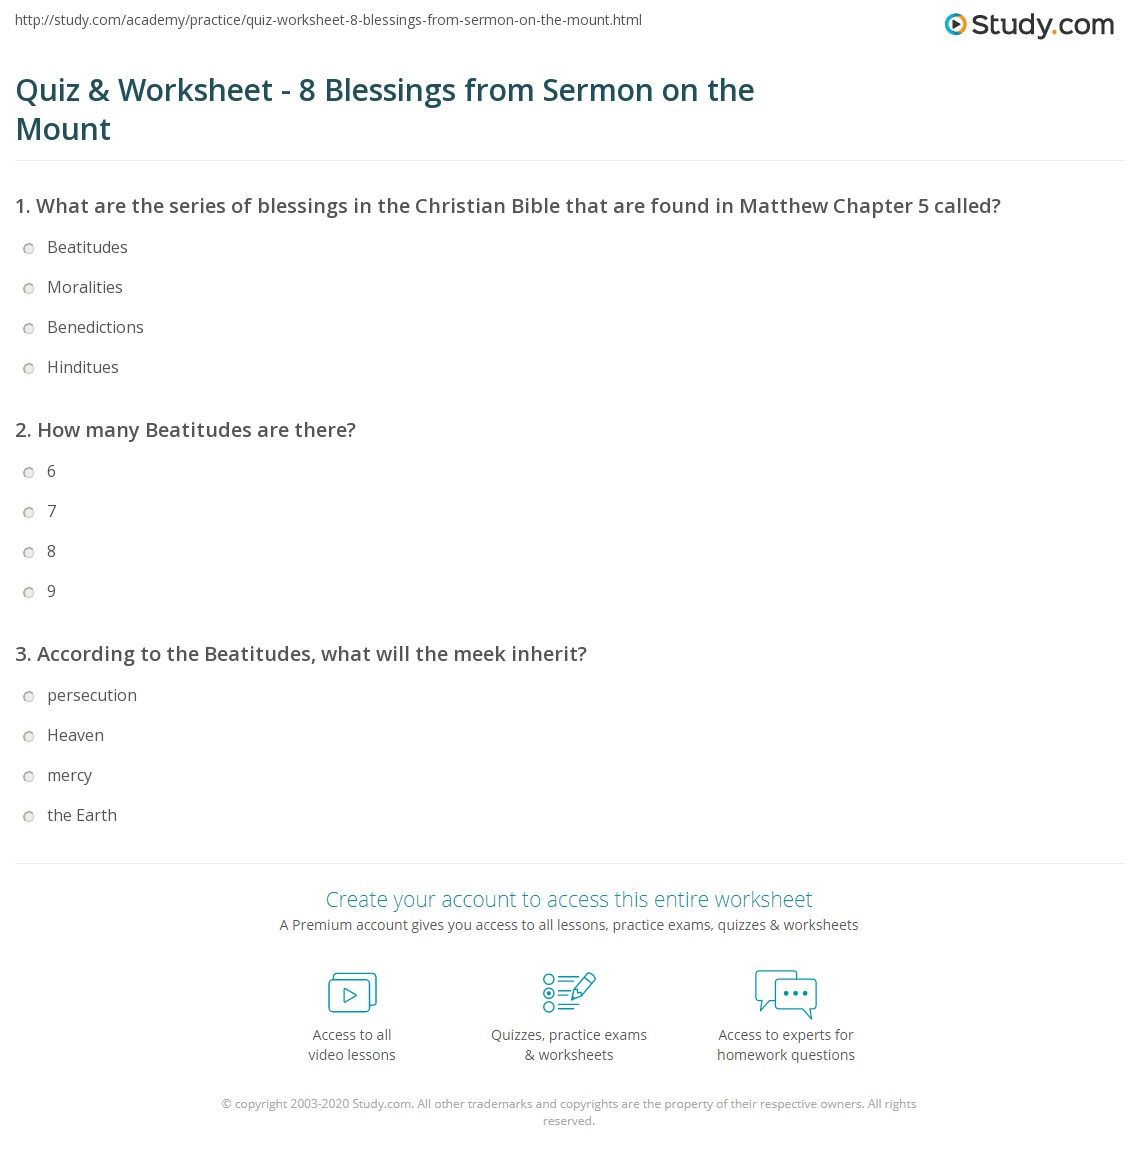 Worksheets Beatitudes Worksheet quiz worksheet 8 blessings from sermon on the mount study com print what are beatitudes definition meaning worksheet